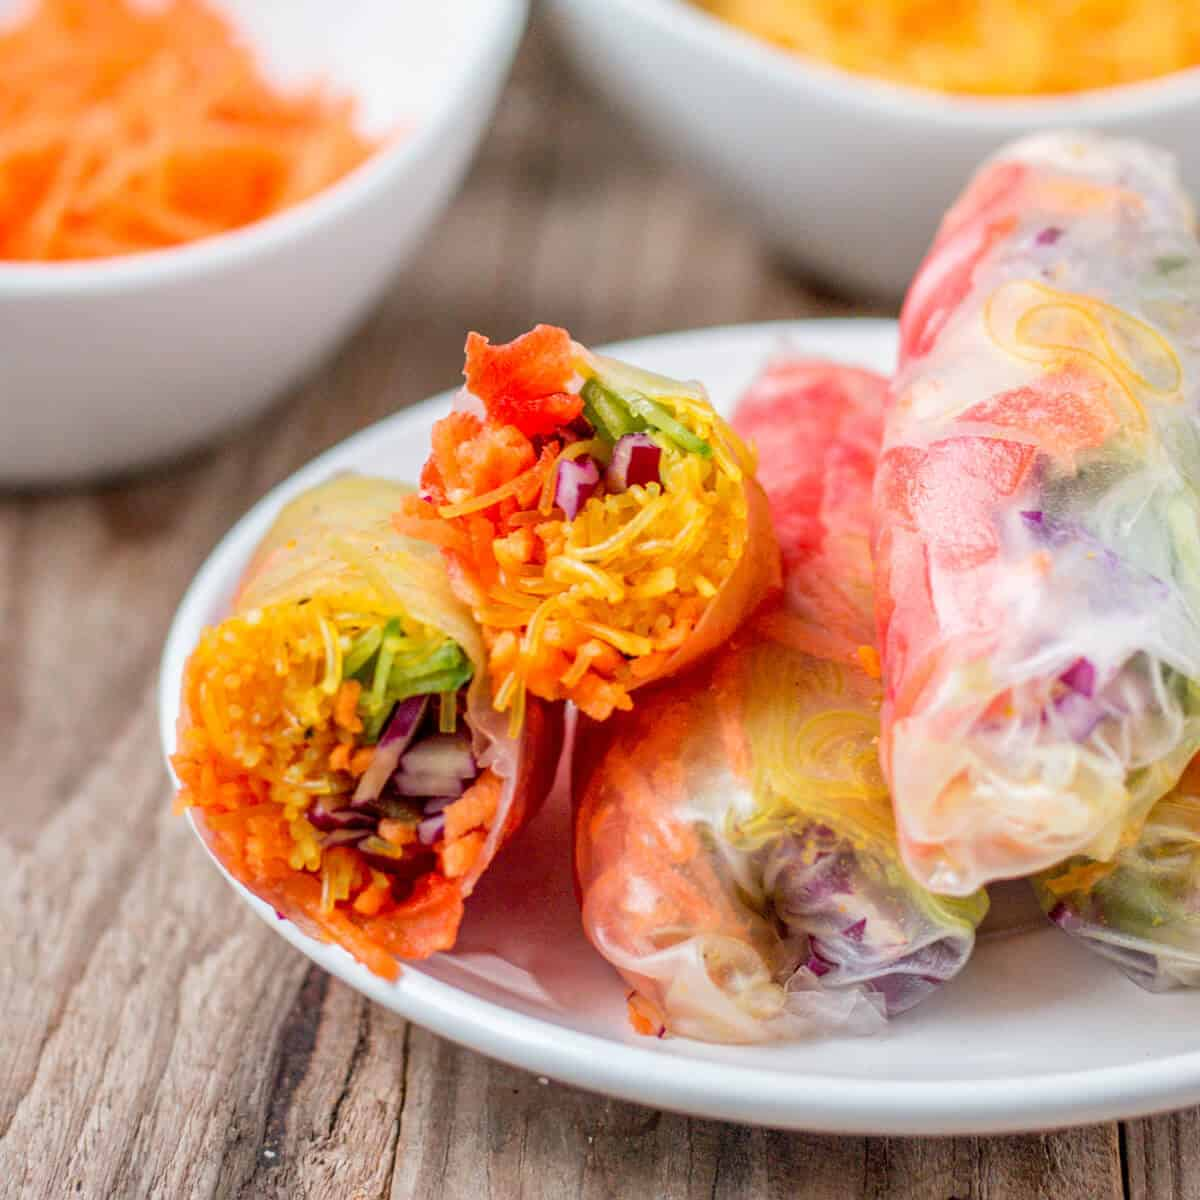 Closeup of a spring roll that has beeb cut in half on a plate showing the colorful rainbow of vegetables inside.